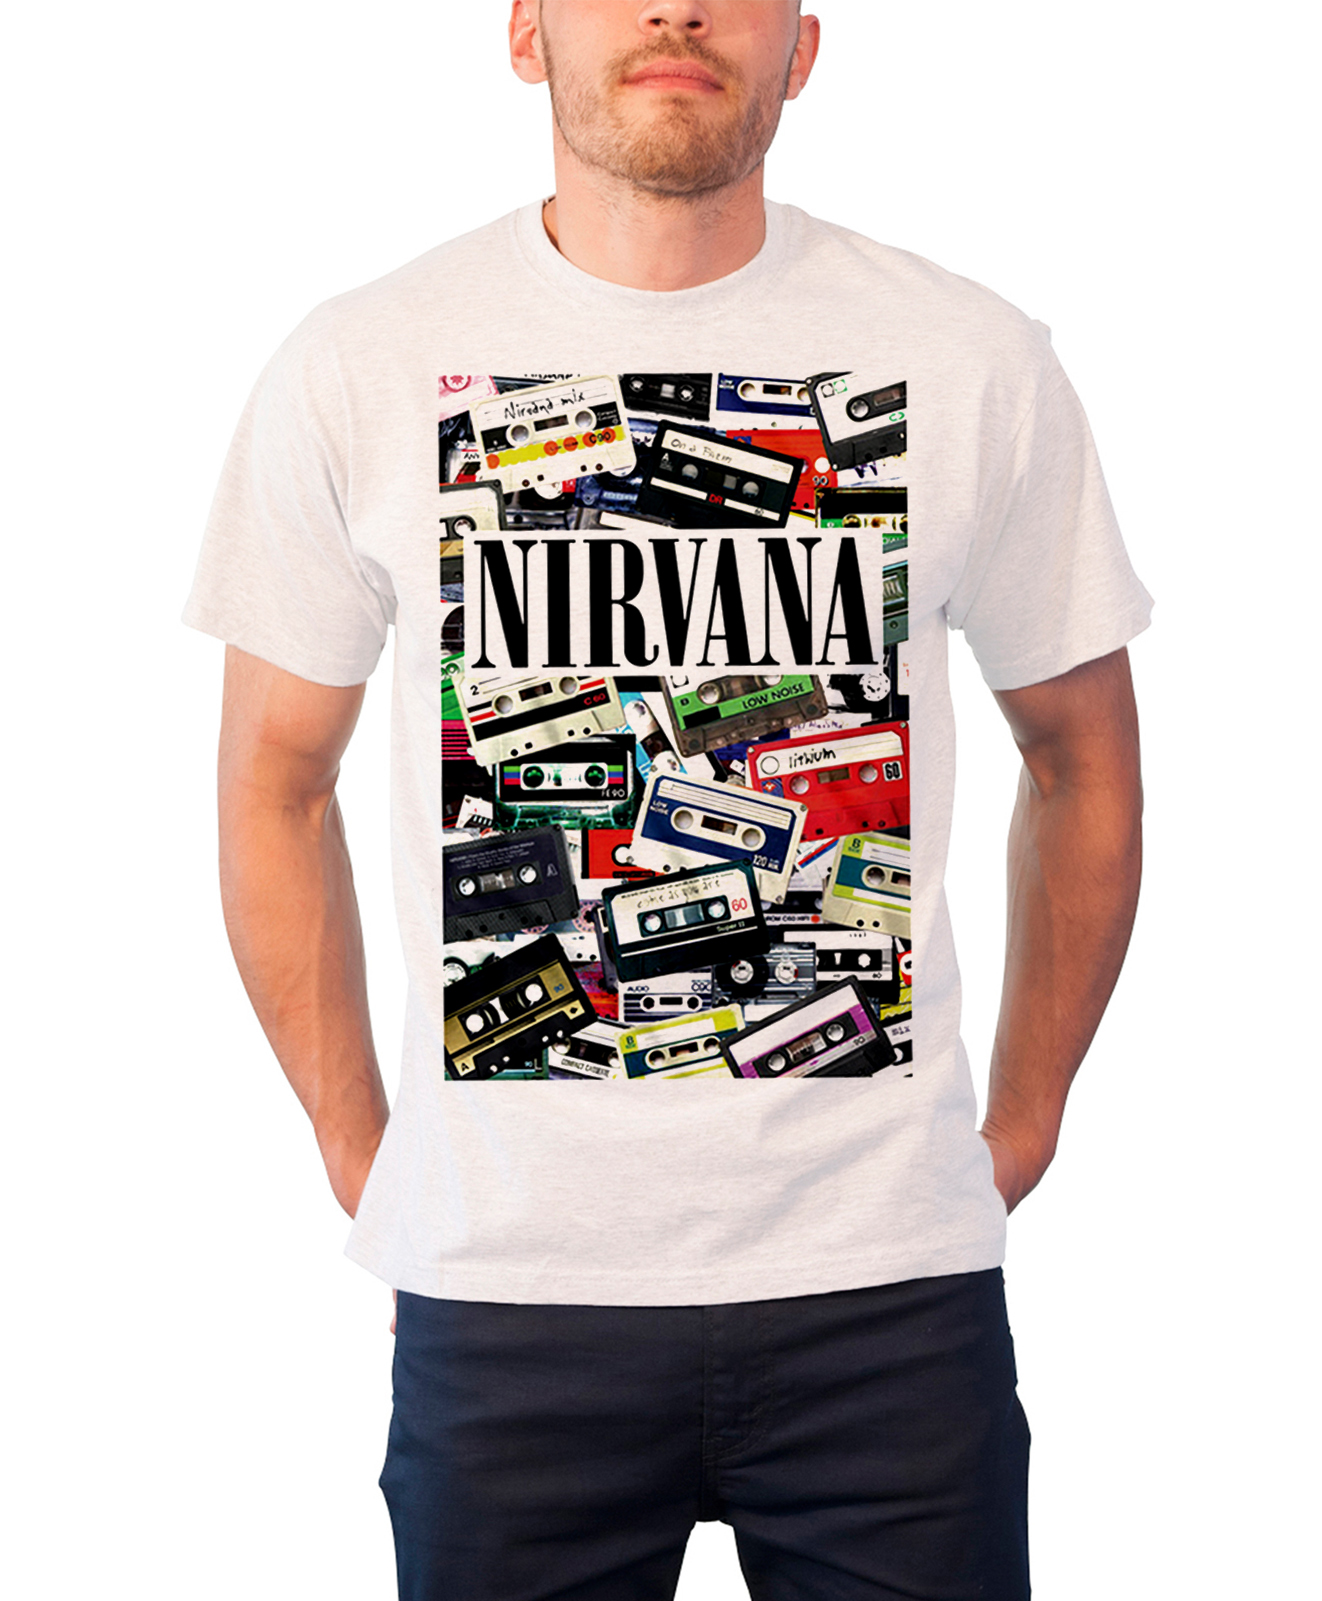 nirvana t shirt nevermind band logo kurt cobain in utero. Black Bedroom Furniture Sets. Home Design Ideas